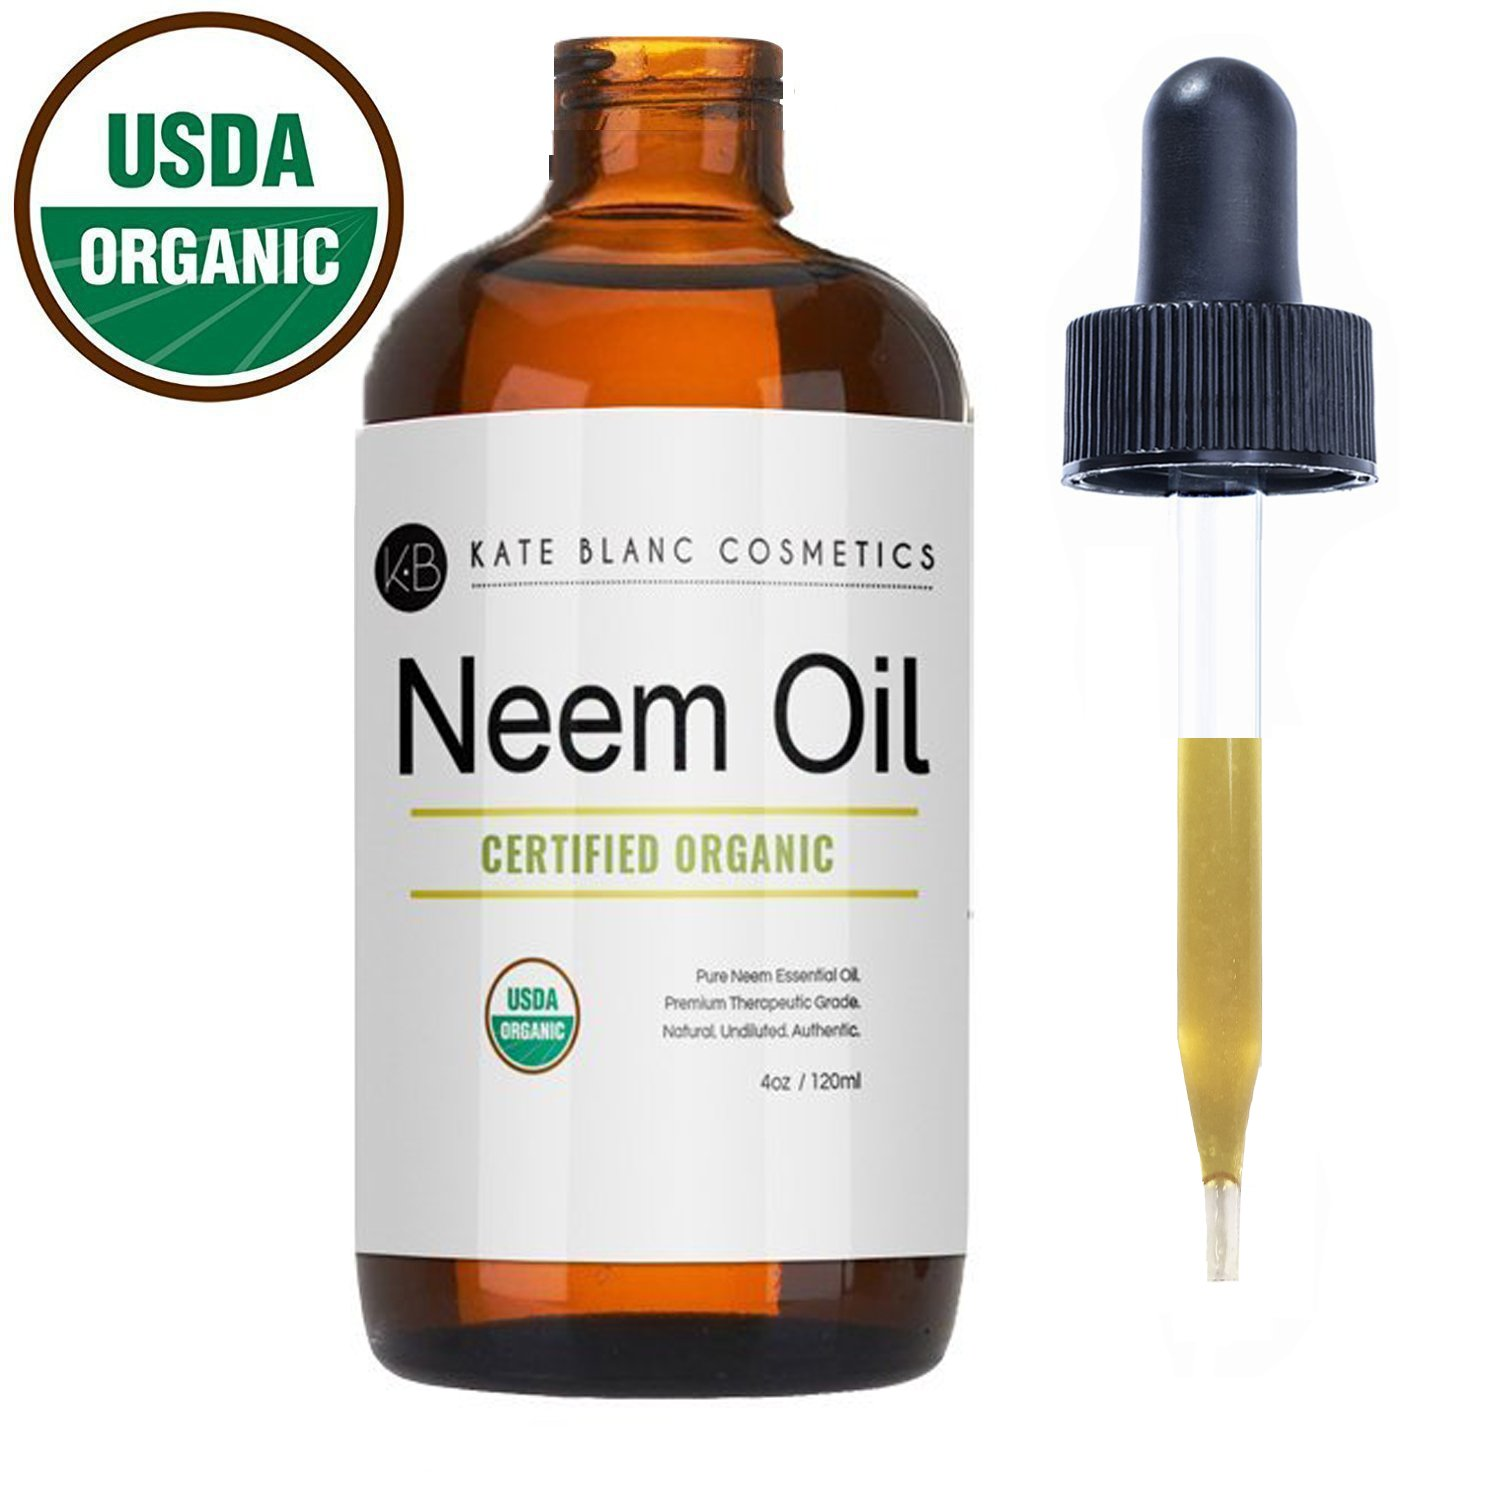 Neem Oil 4 fl.oz. 120ml USDA Certified Organic ニームオイル B074HMX85T